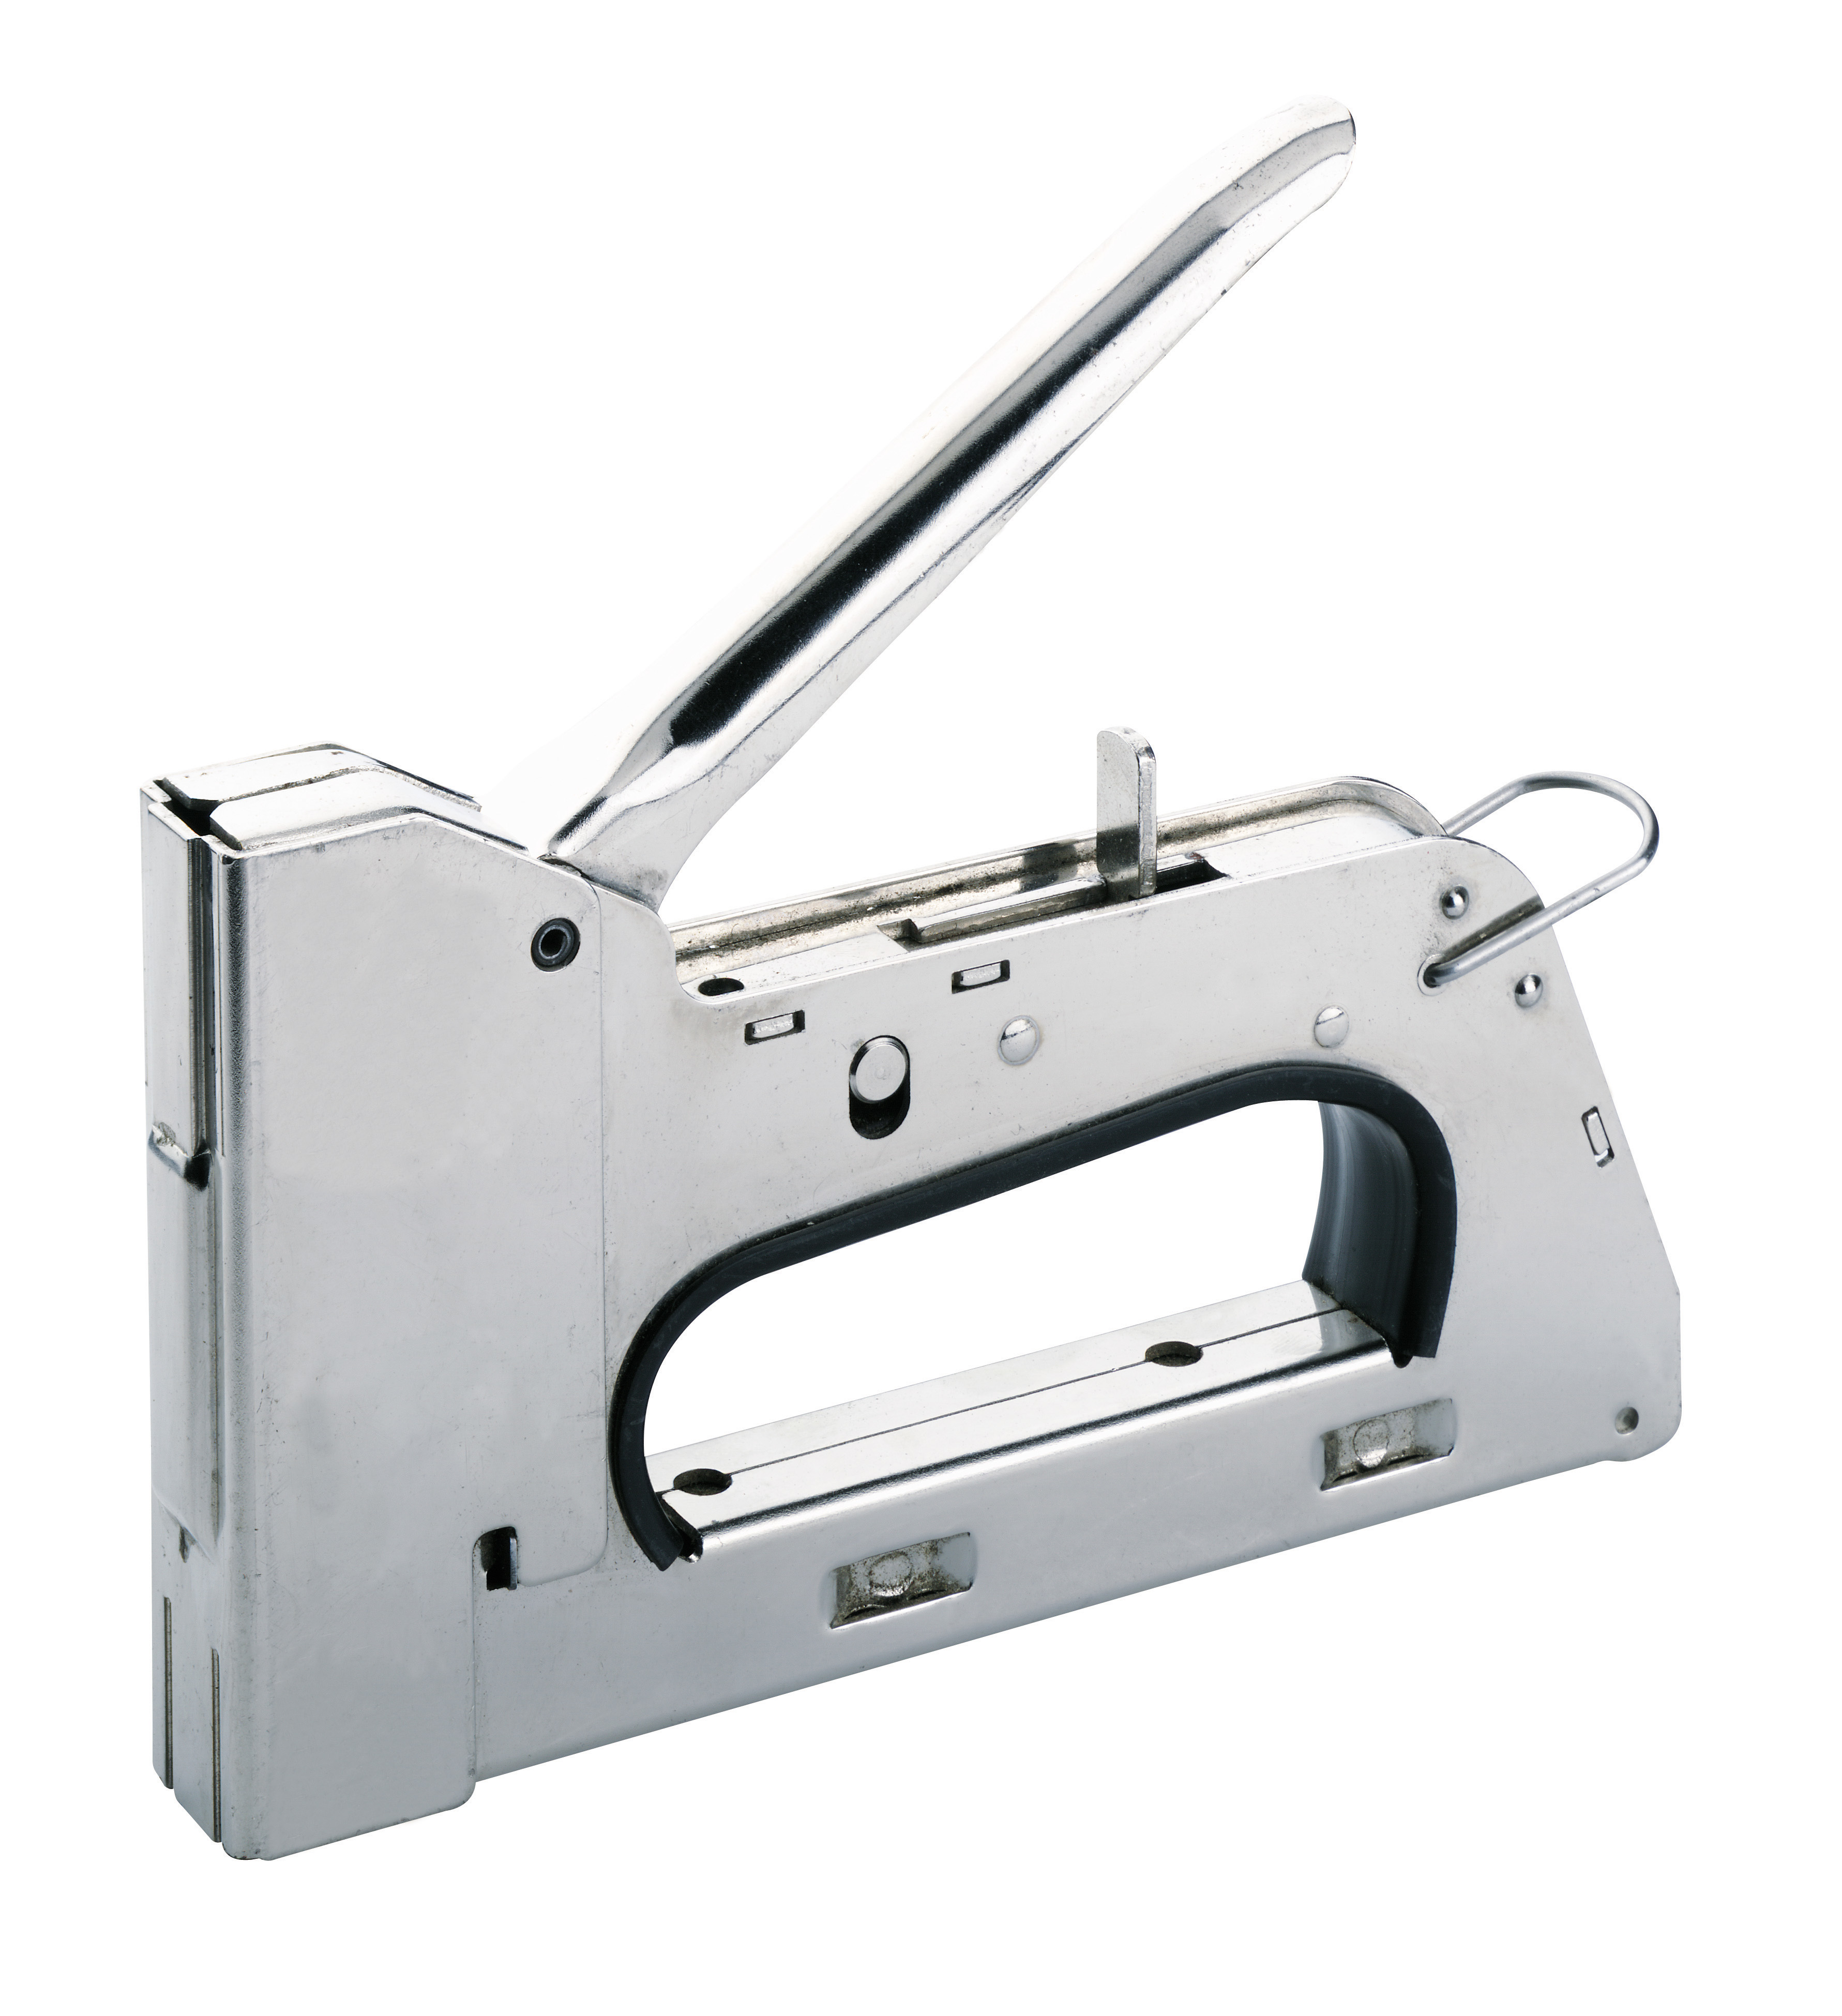 staple gun military HD Wallpaper